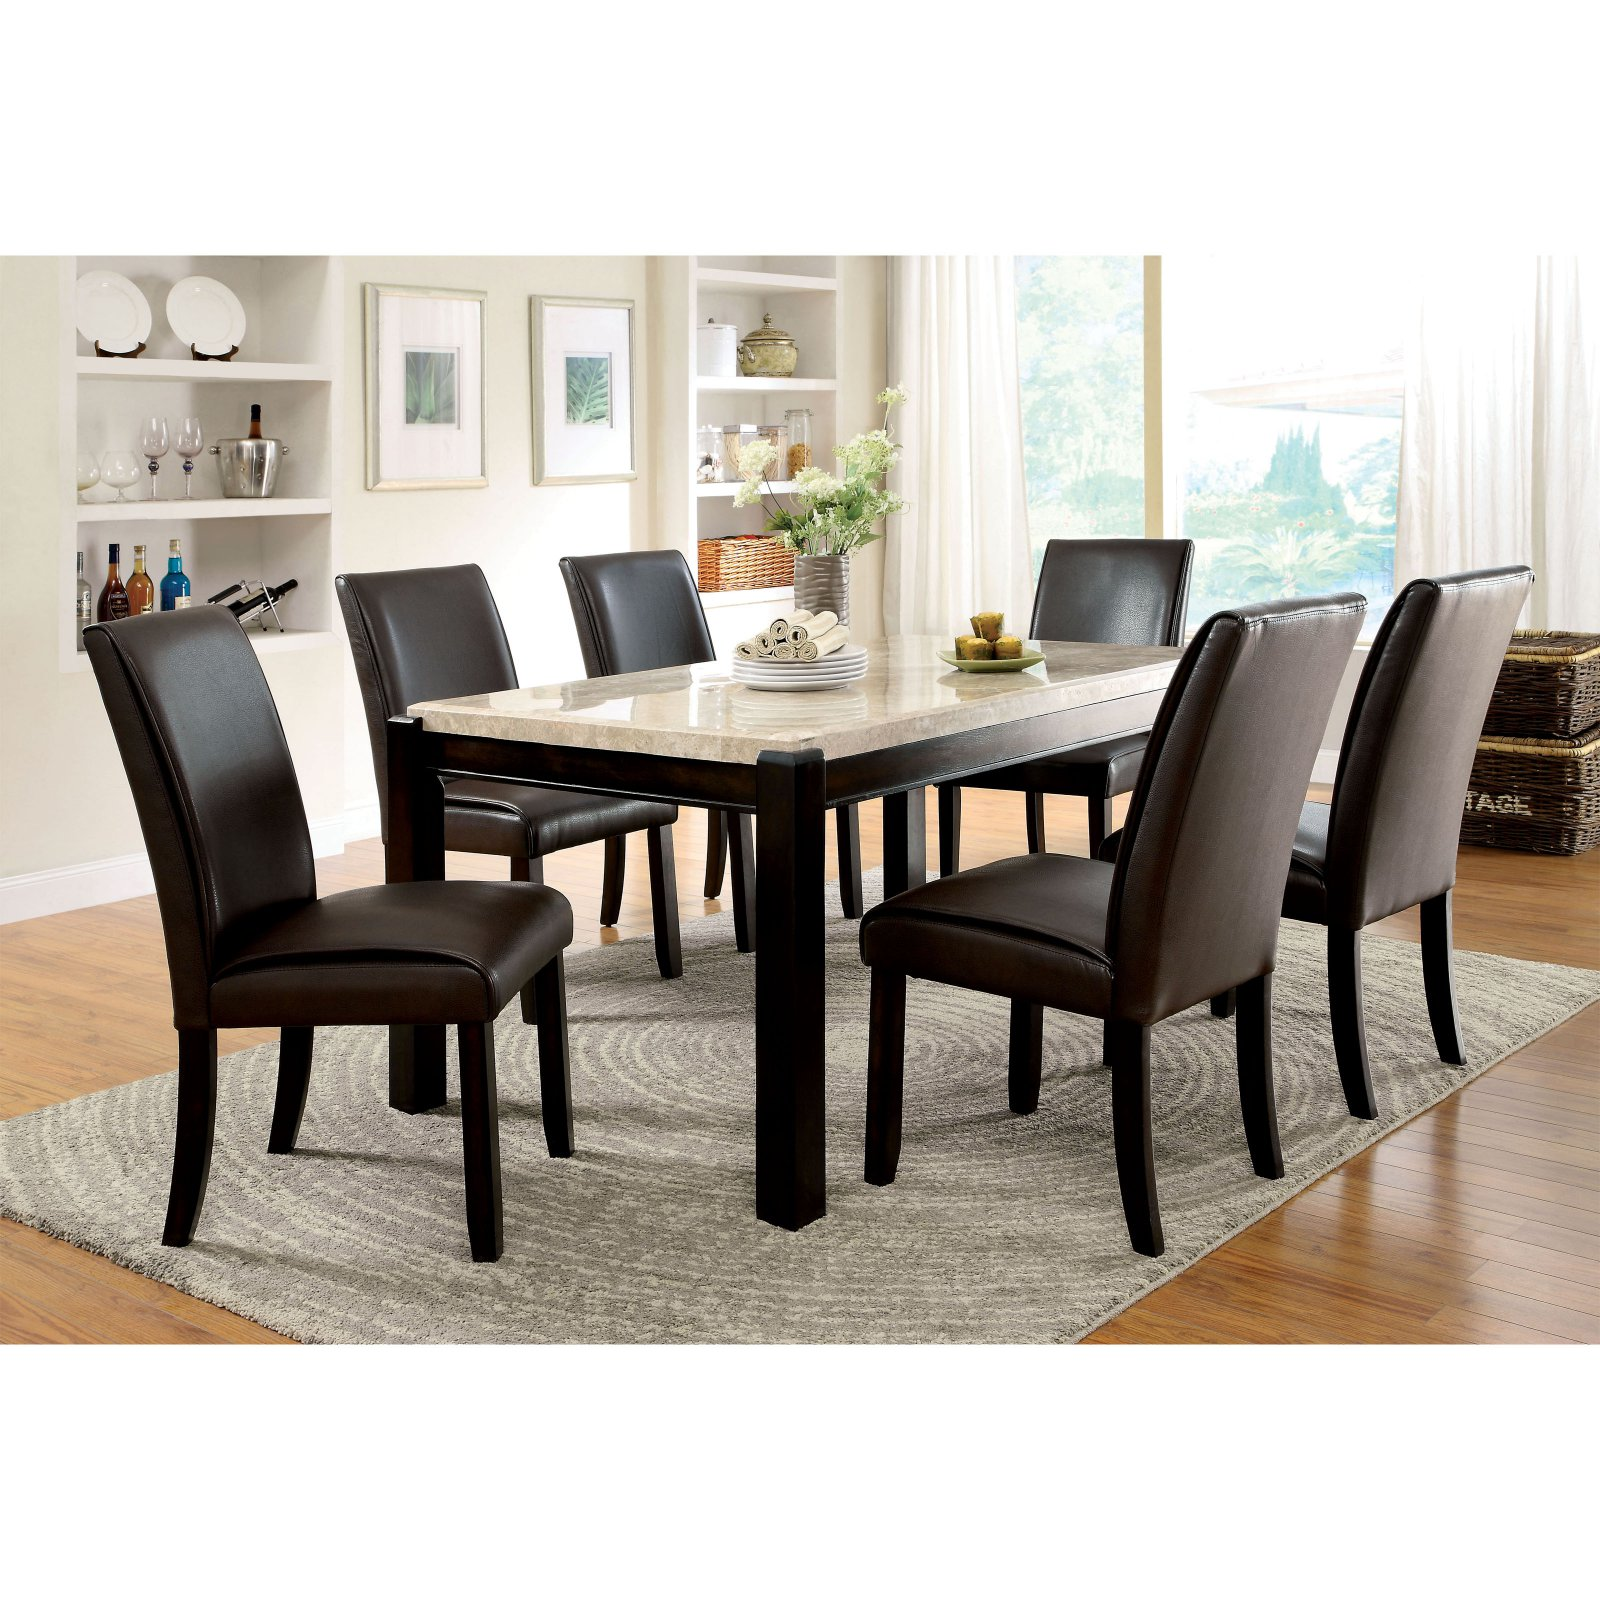 Incroyable Furniture Of America Friedrich Modern 7 Piece Marble Dining Table Set